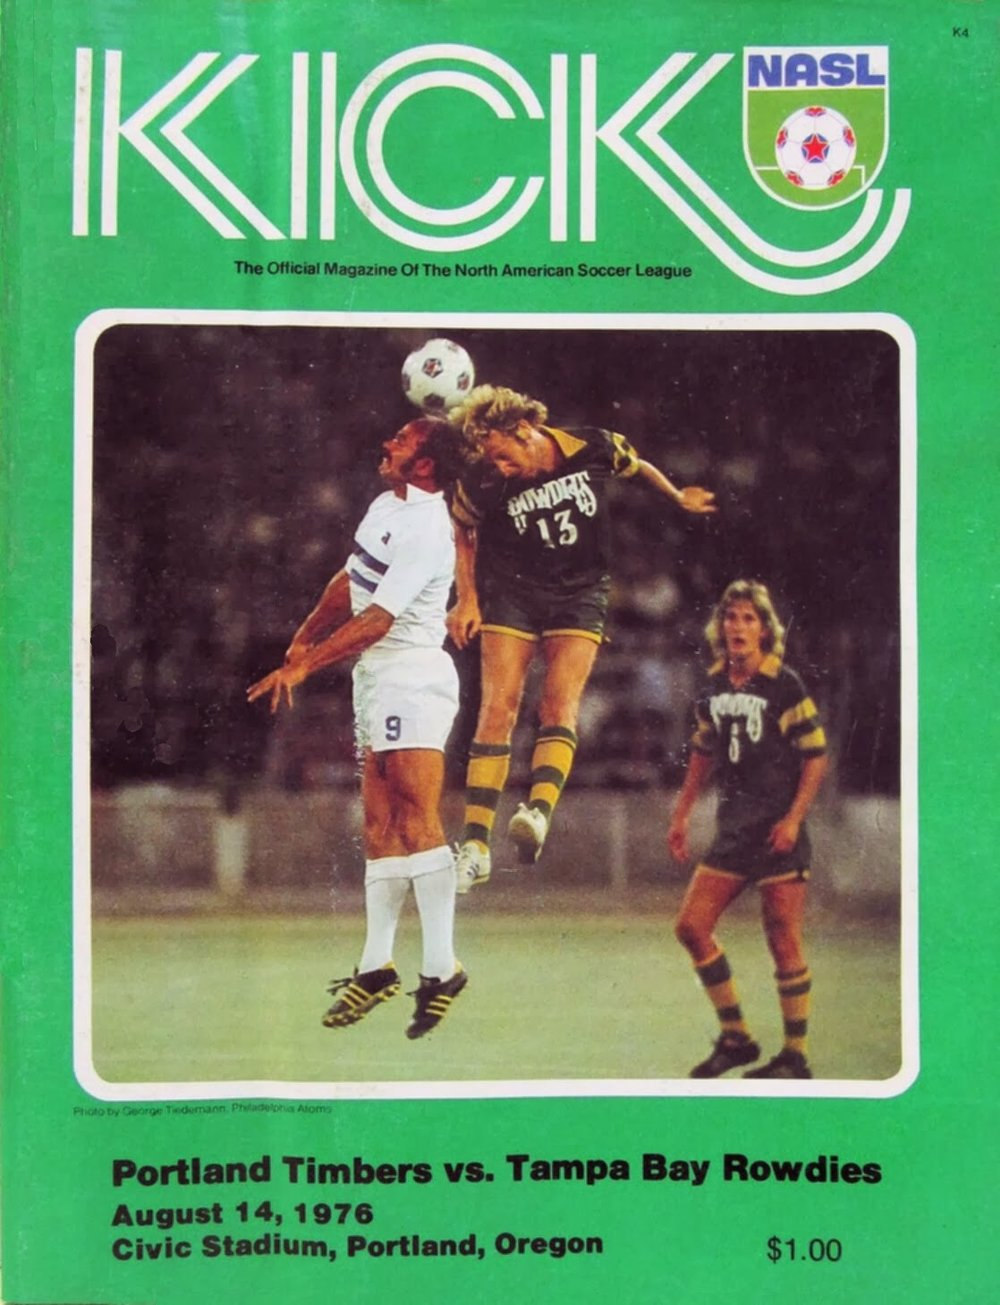 1976-8-14 Timbers vs Rowdies.JPG